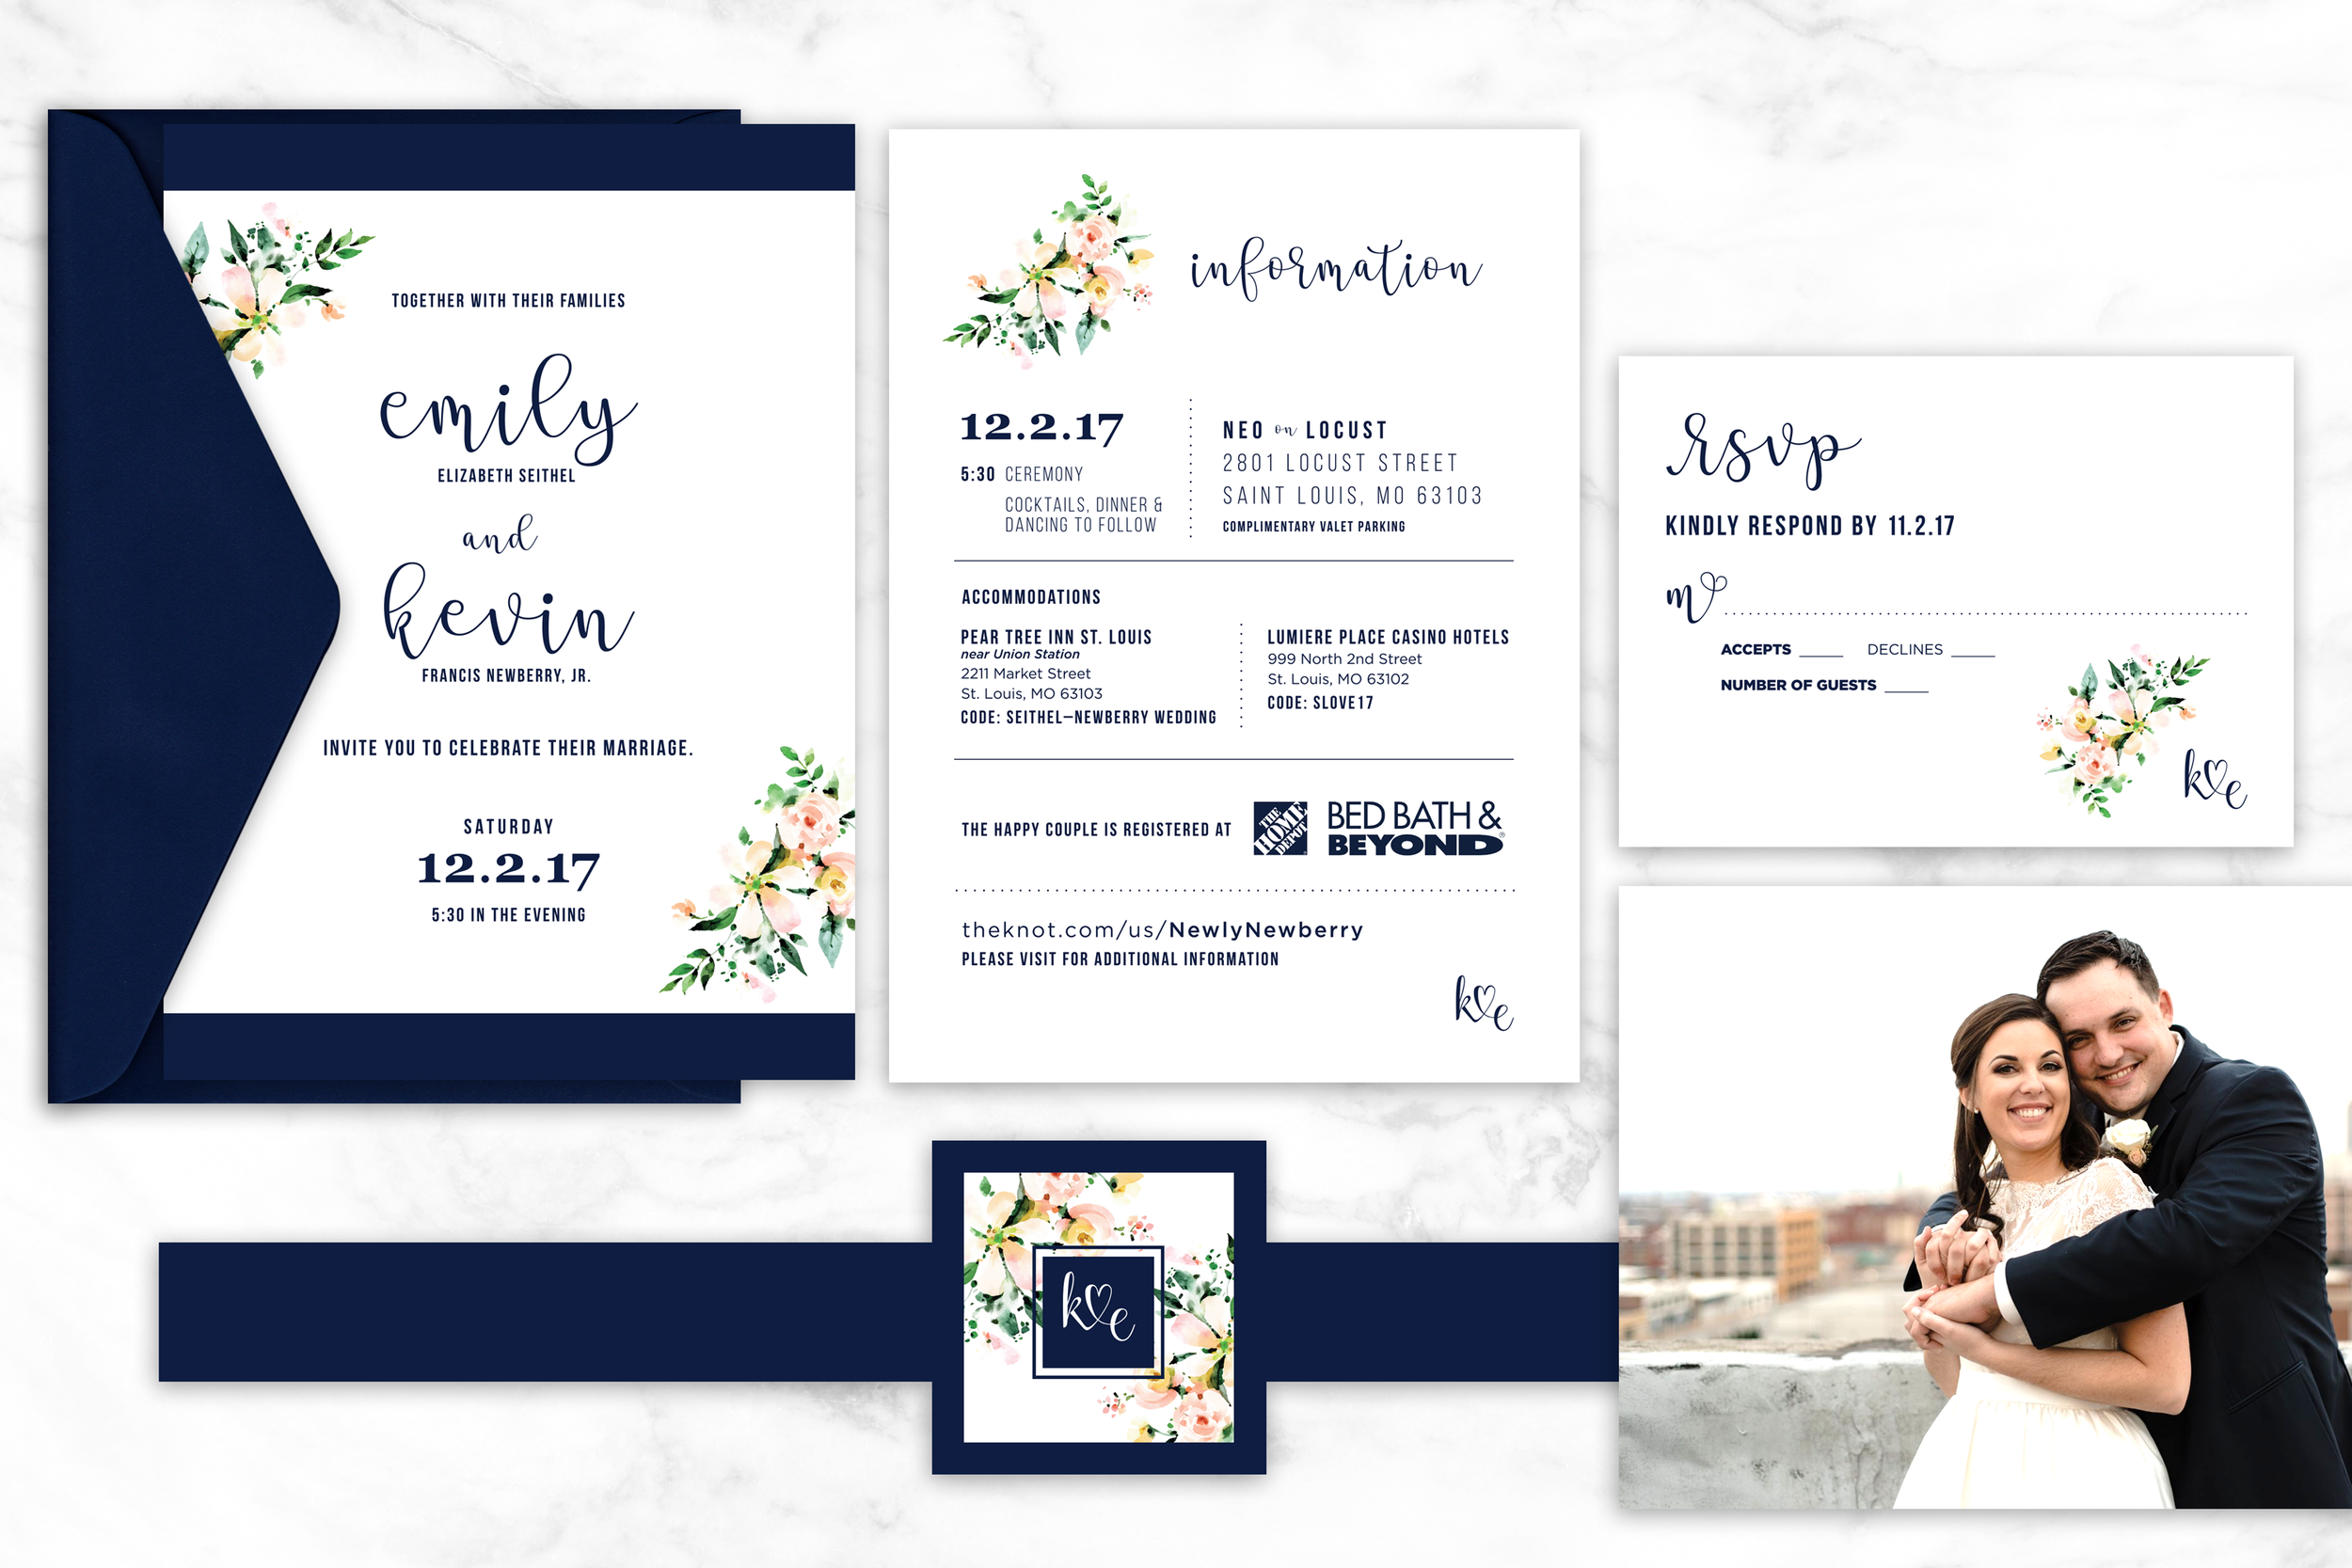 Emmy & Kevin are the sweetest. I had the pleasure of creating this simple and beautiful wedding suite for a very sweet and loving couple, Emmy & Kev. The watercolor floral detail with the stark navy made for an elegant combination – just like this couple!